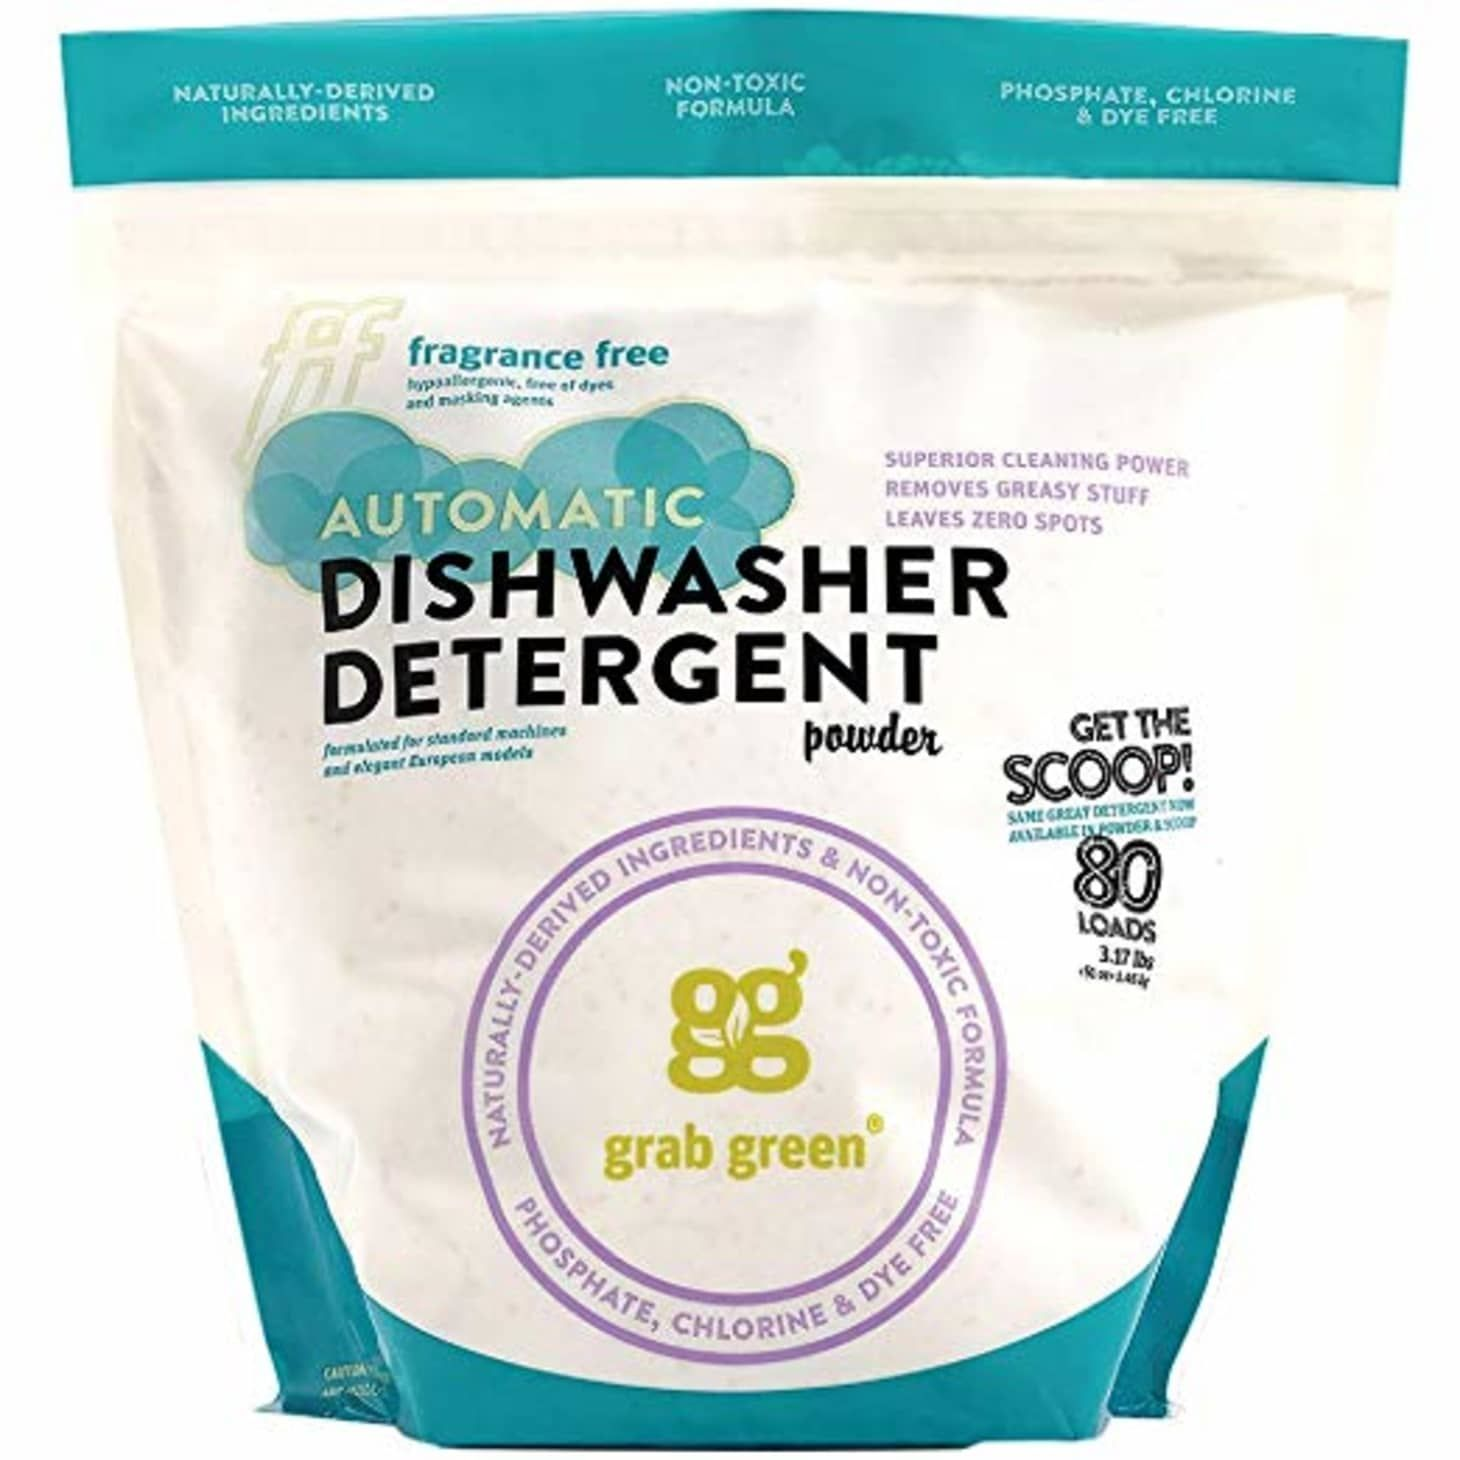 Reader Favorite Amazon Products For The Kitchen Kitchn Best Dishwasher Detergent Natural Dishwasher Detergent Fragrance Free Products